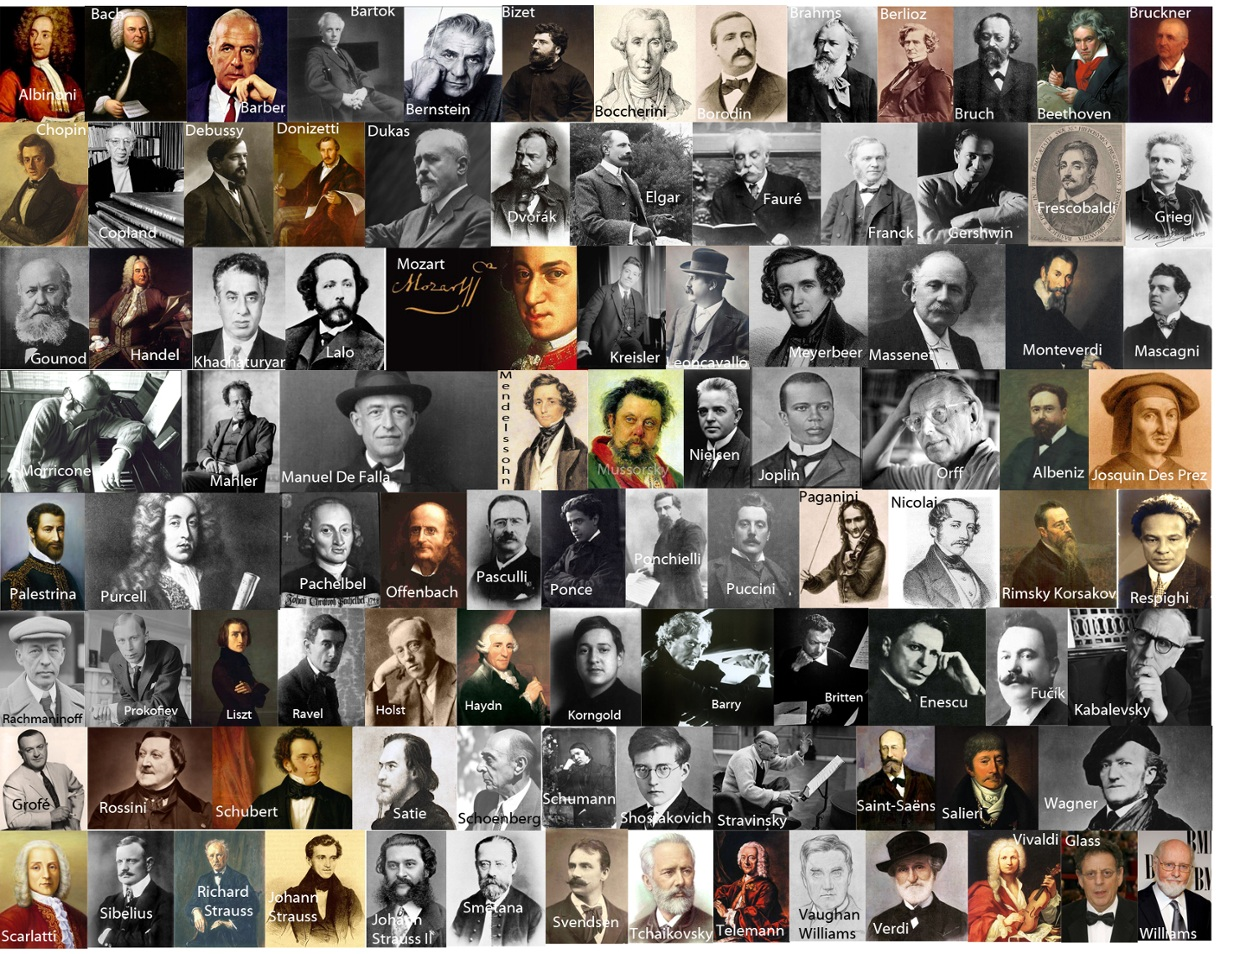 """Copy of """"Famous Composers Linked to YouTube Videos of Th..."""""""